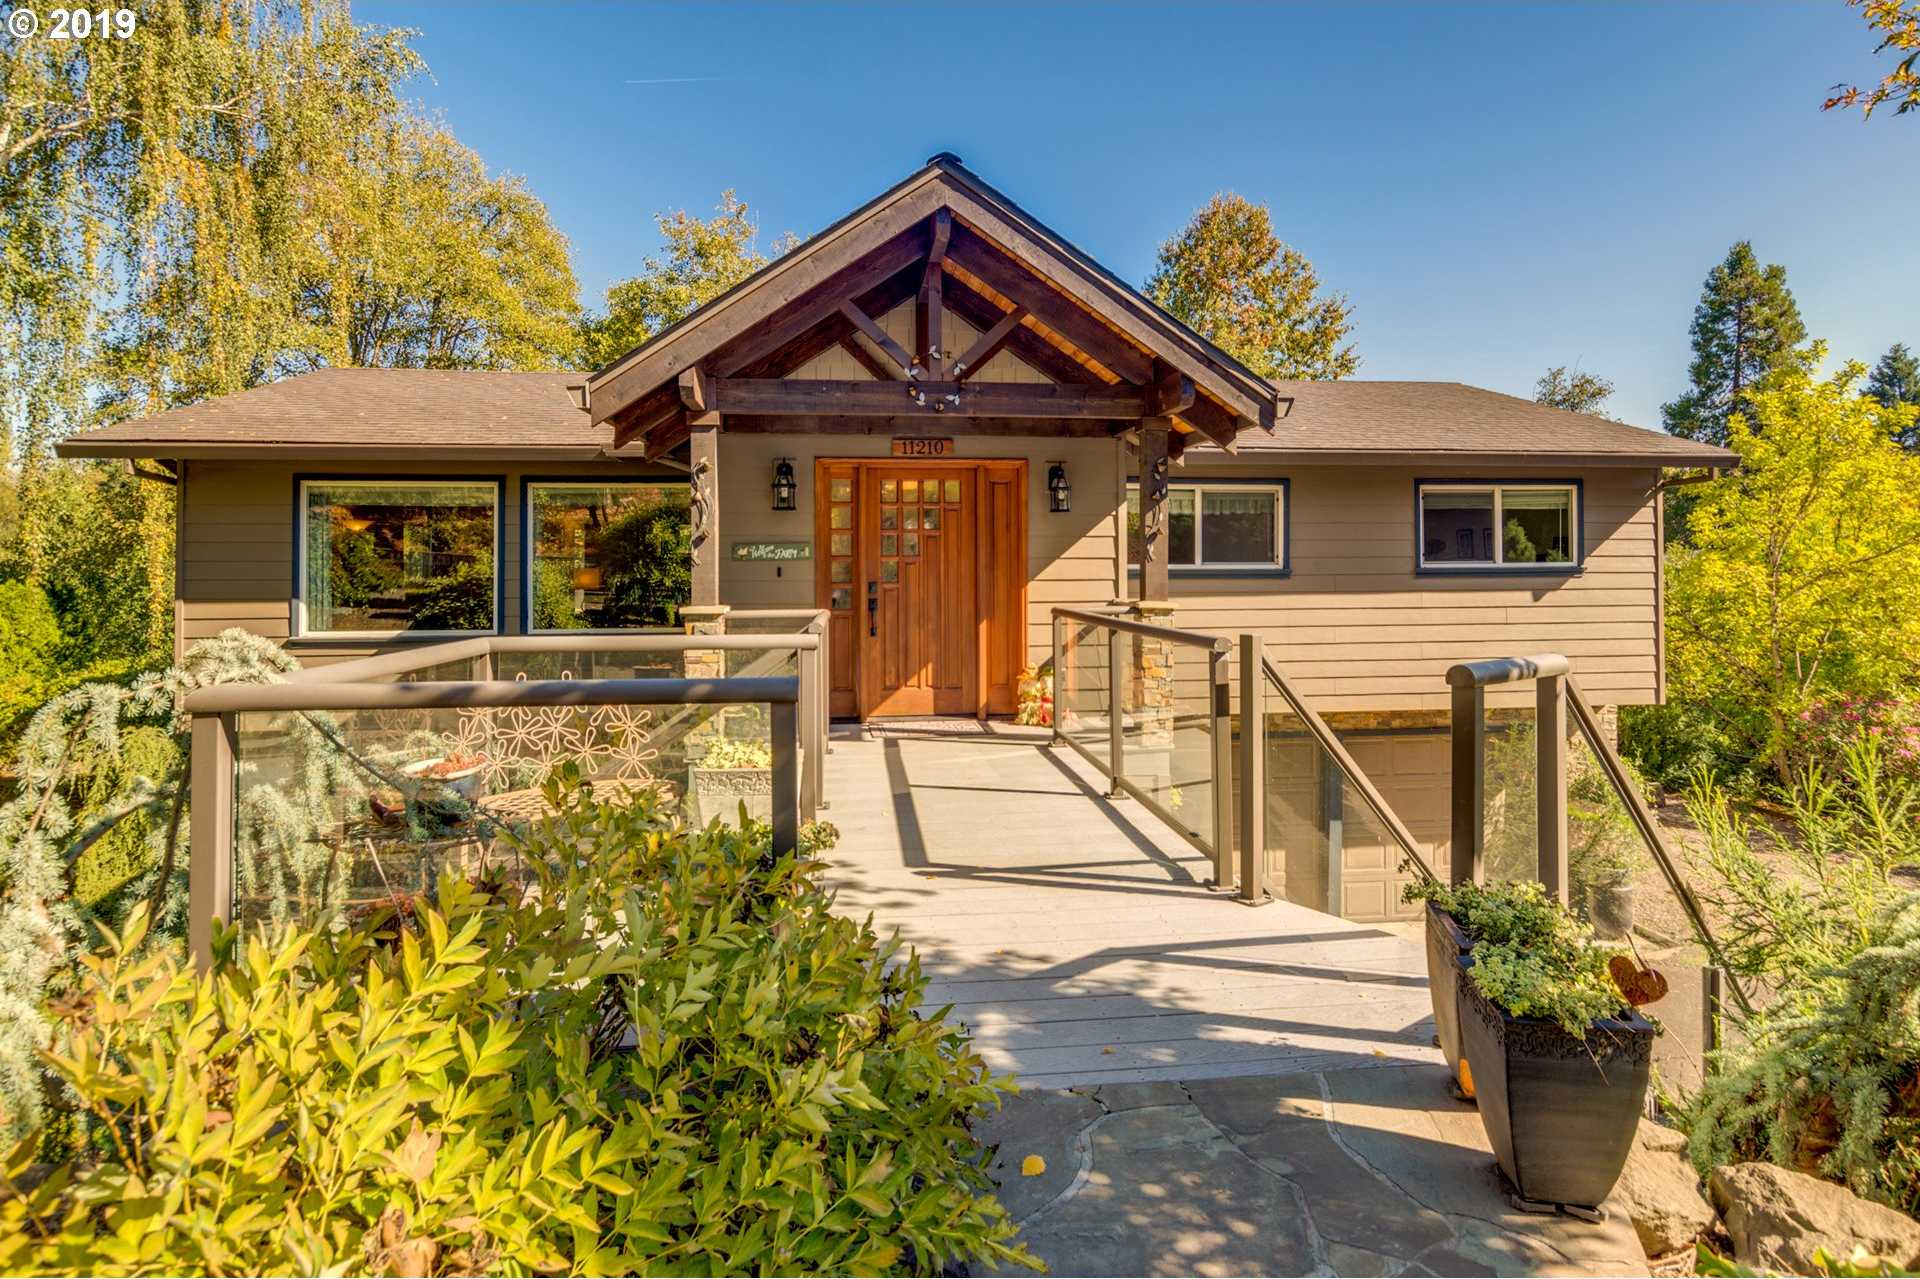 $495,000 - 4Br/3Ba -  for Sale in Tigard